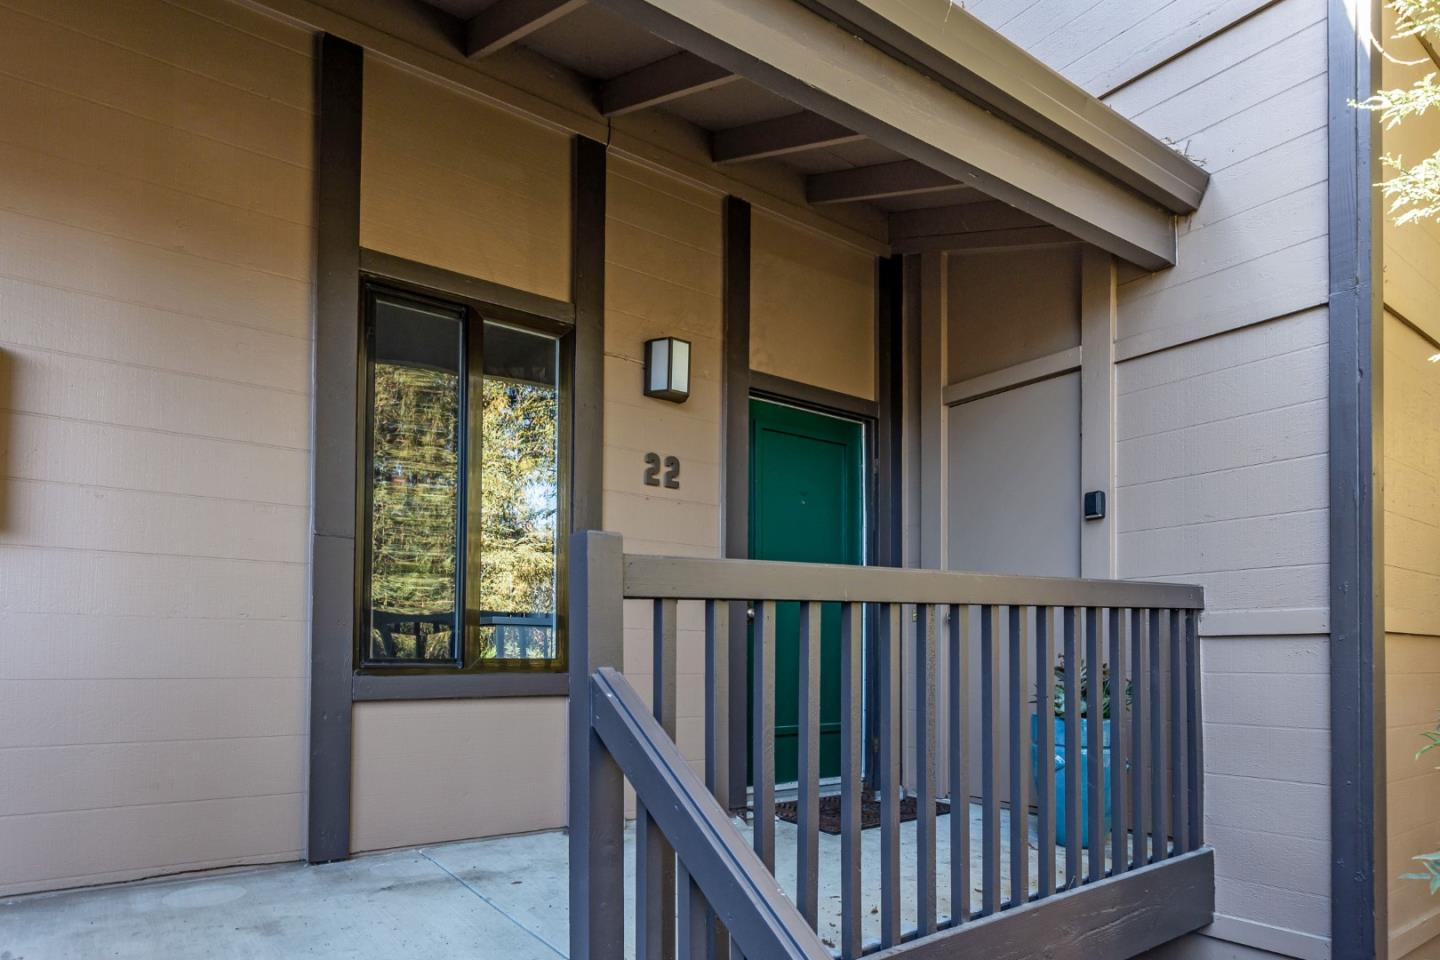 THIS IS A BEAUTIFUL 2 BEDROOM & 2 BATHROOM 1,365 SF UNIT - SECLUDED IN THE BACK OF THE COMPLEX - NEXT DOOR TO HERITAGE PARK - SELLER OWNED SOLAR PANELS - ELEC. BOSCH CAR CHARGER, 2 HEAT/AC PUMPS & BASEBOARD HEATERS, NEW FLOORING, NEW STONE COUNTERS IN KITCHEN AND BATHS, NEW FAUCETS AND SINKS, DOUBLE PANE WINDOWS AND SLIDER - REMOTE OPERABLE SKYLIGHT & REMOTE SHADES